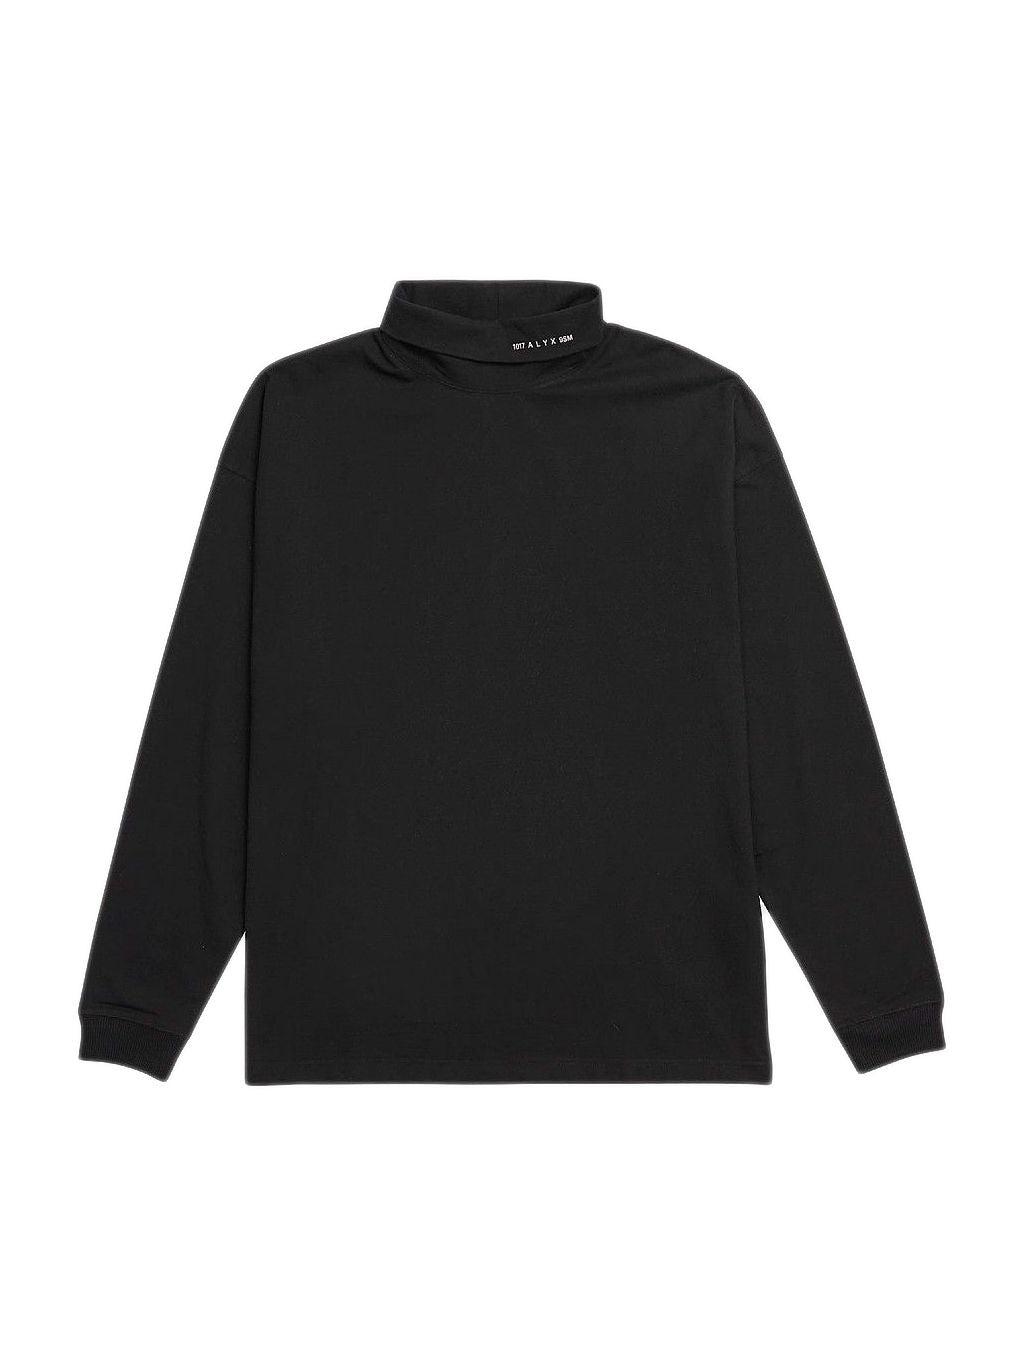 Black Visual Roll Neck Long Sleeve T-Shirt